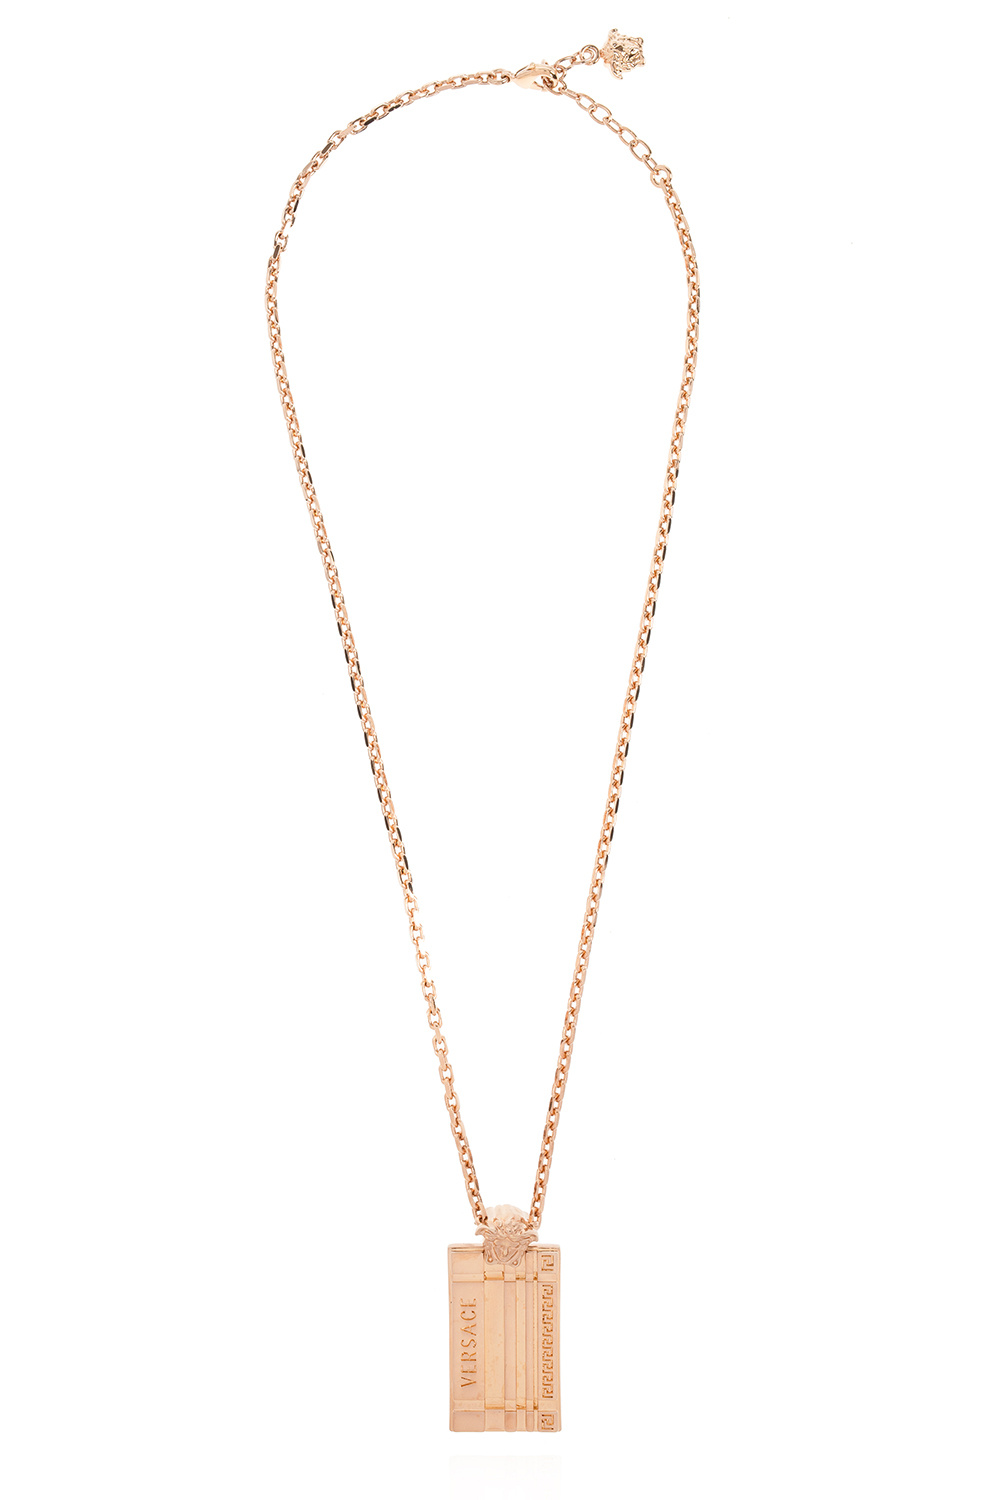 Versace Charm necklace